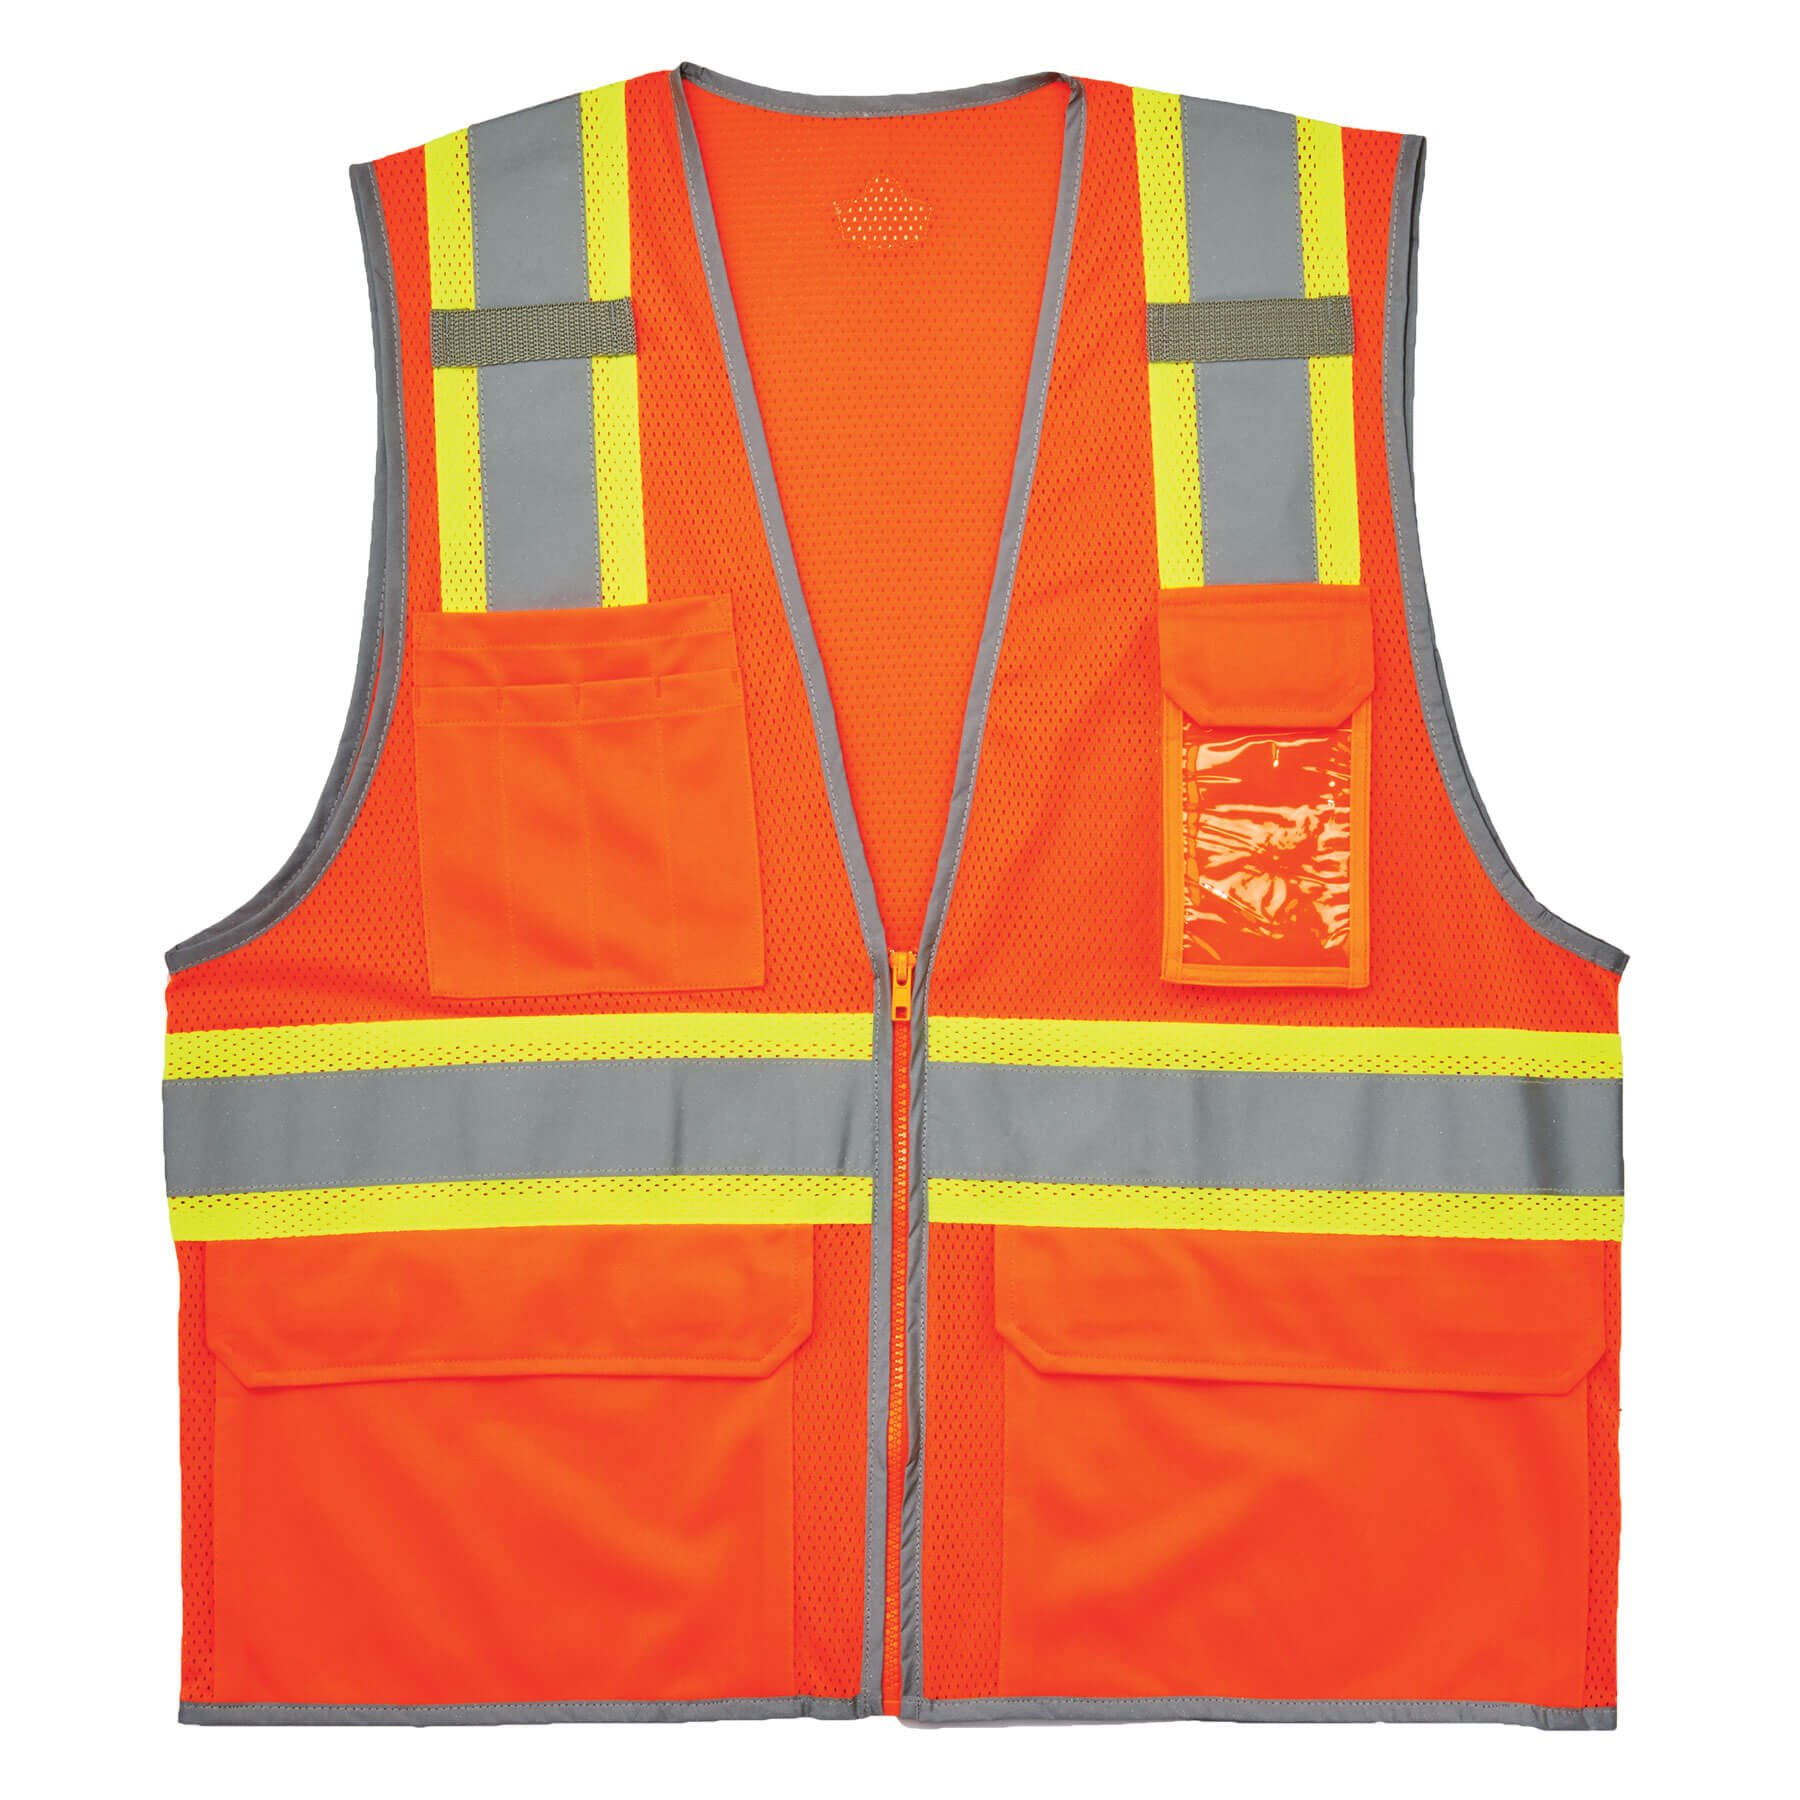 f8e374dee4ff Get Quotations · Ergodyne GloWear 8246Z ANSI High Visibility Two Tone Mesh  Safety Vest with Reflective Binding